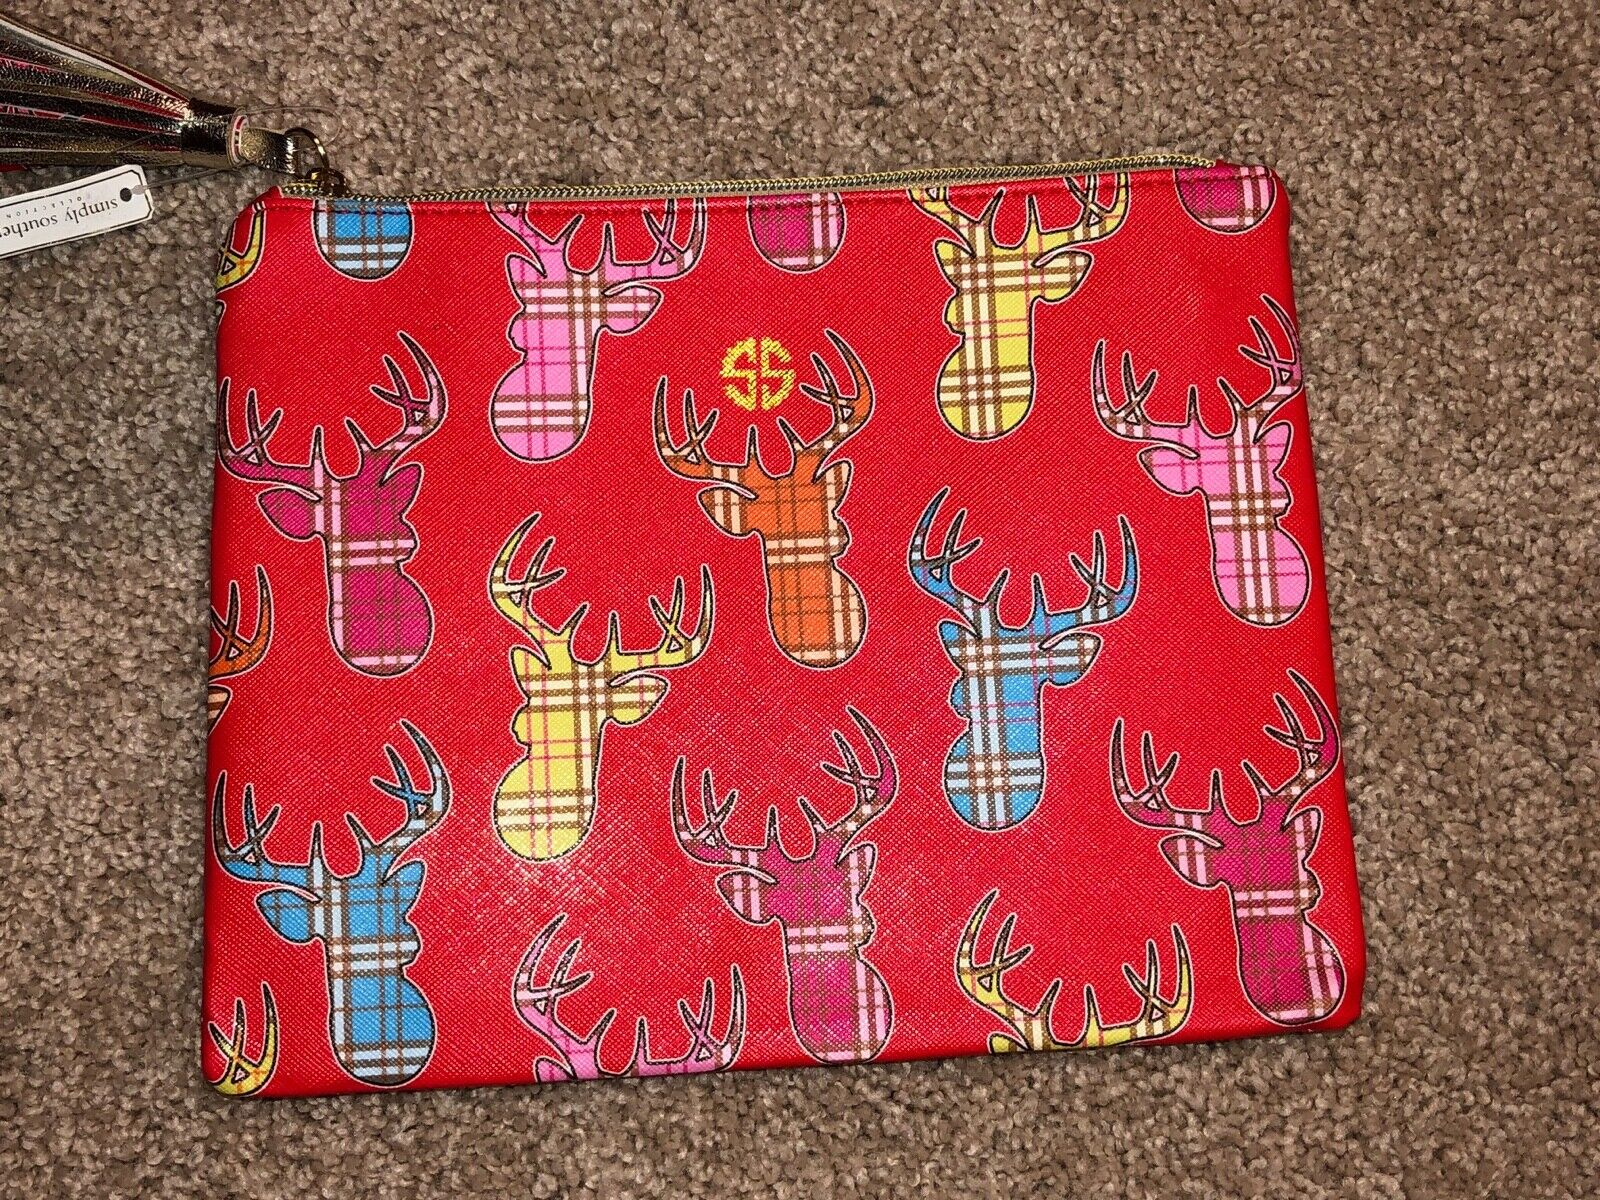 NWT Simply Southern Plaid Deer/Buck Zippered Clutch with Tassel